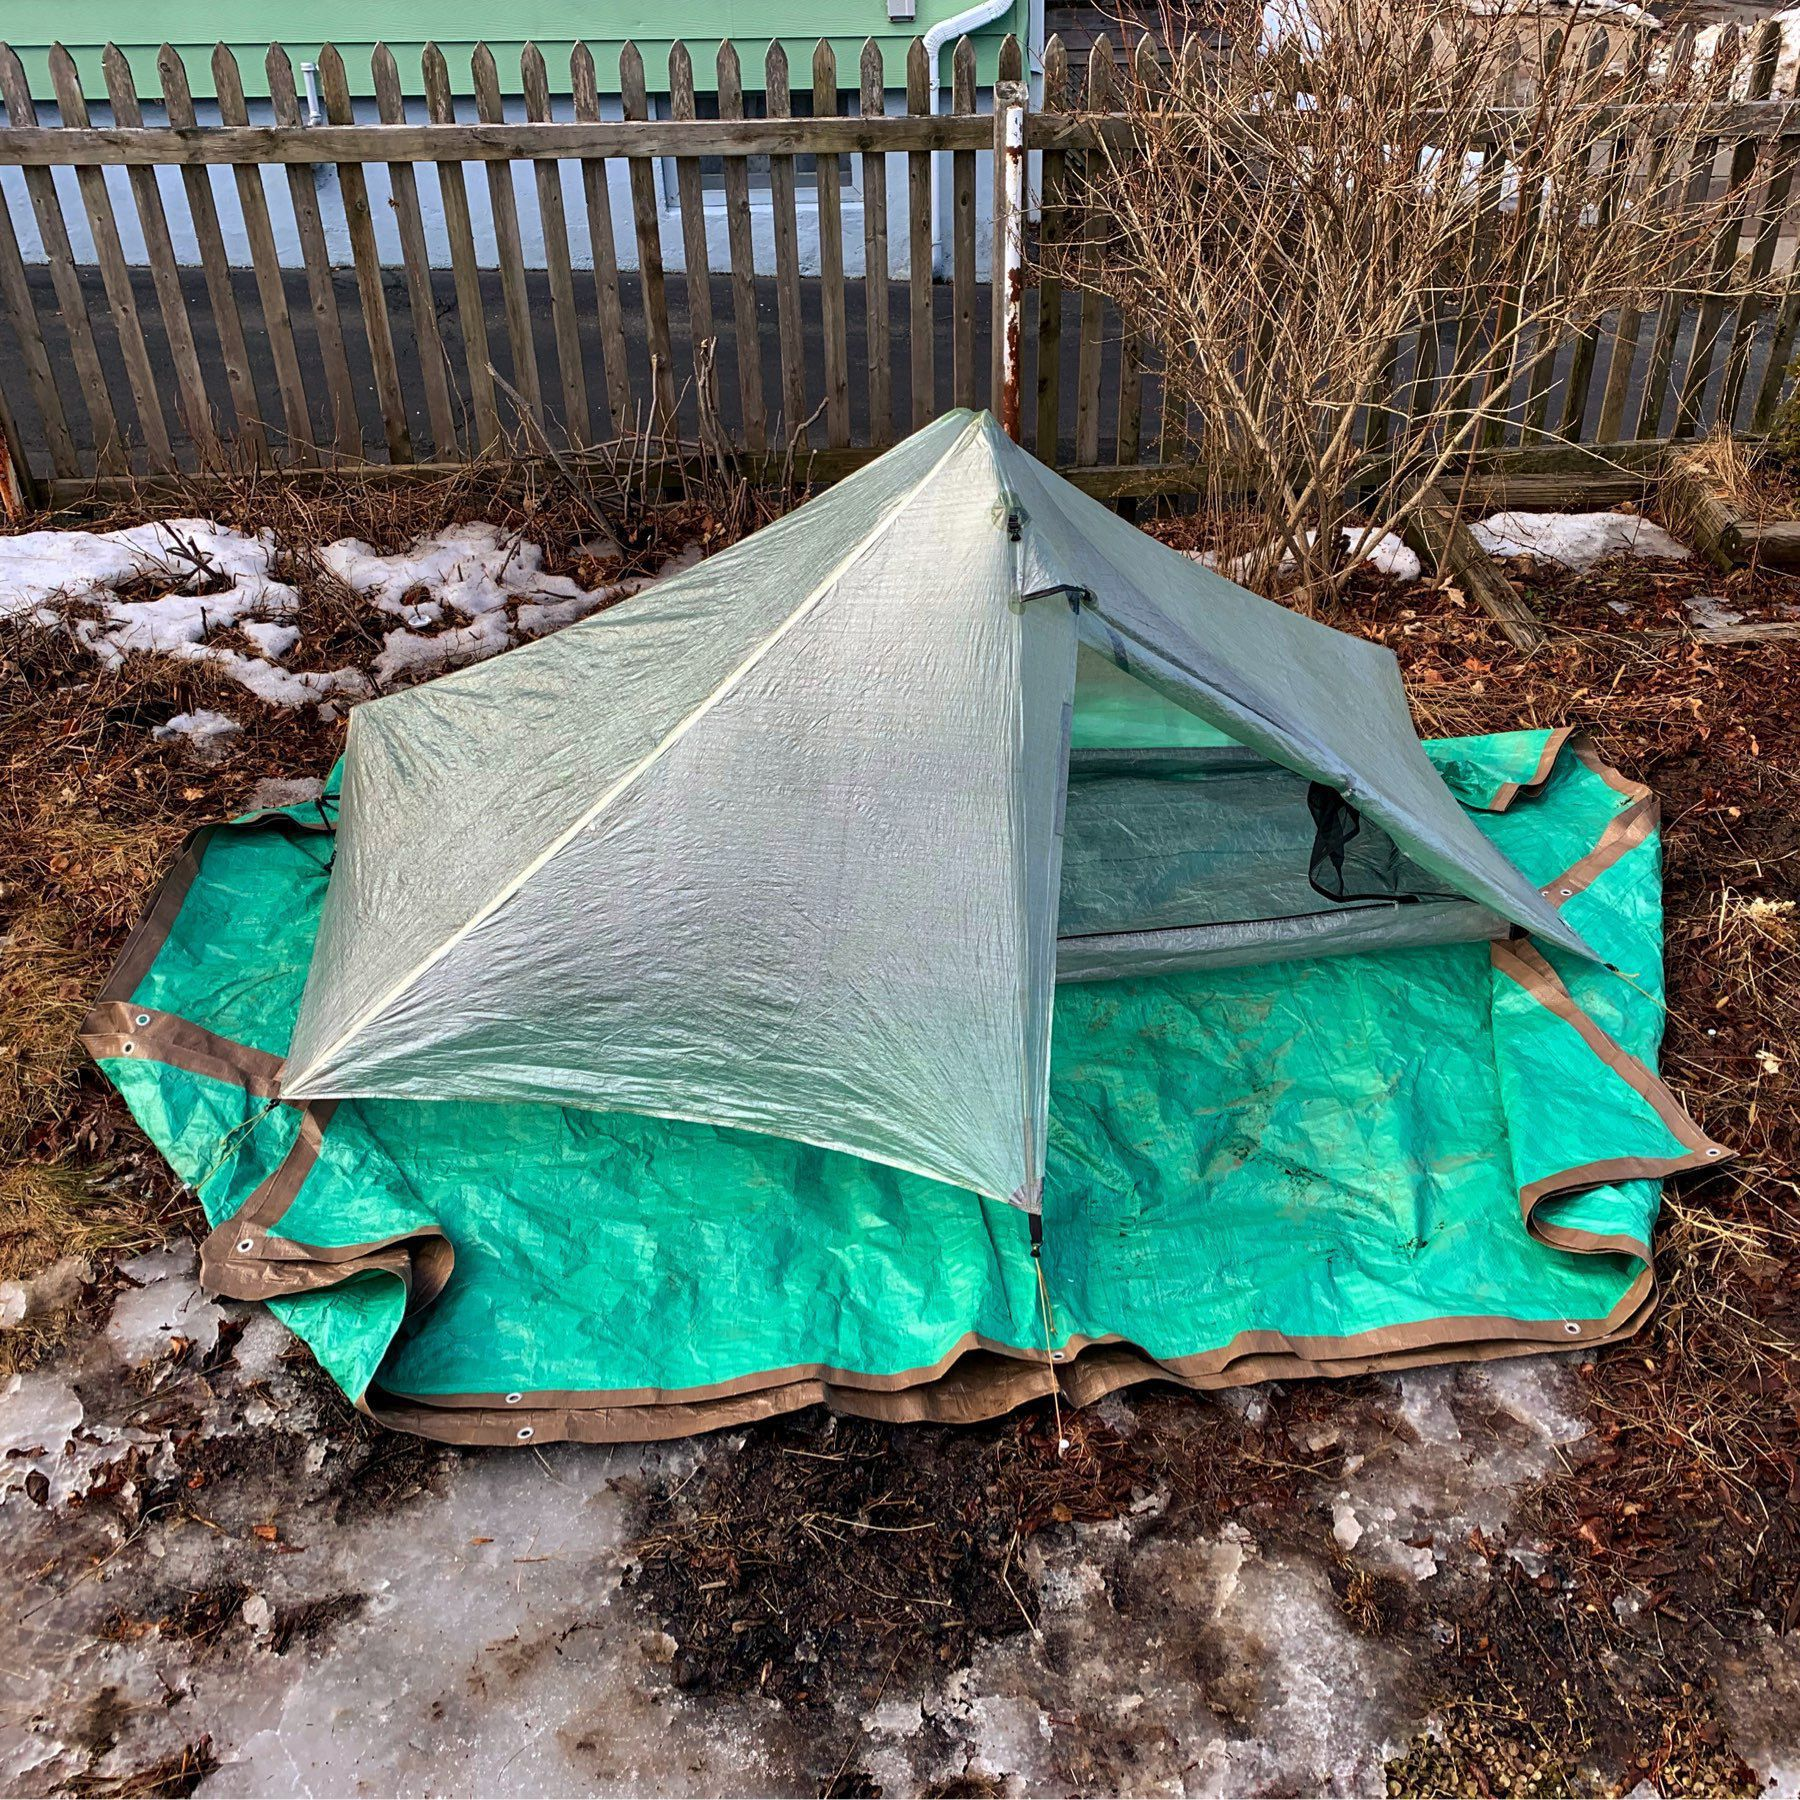 A tent in a backyard with the door open